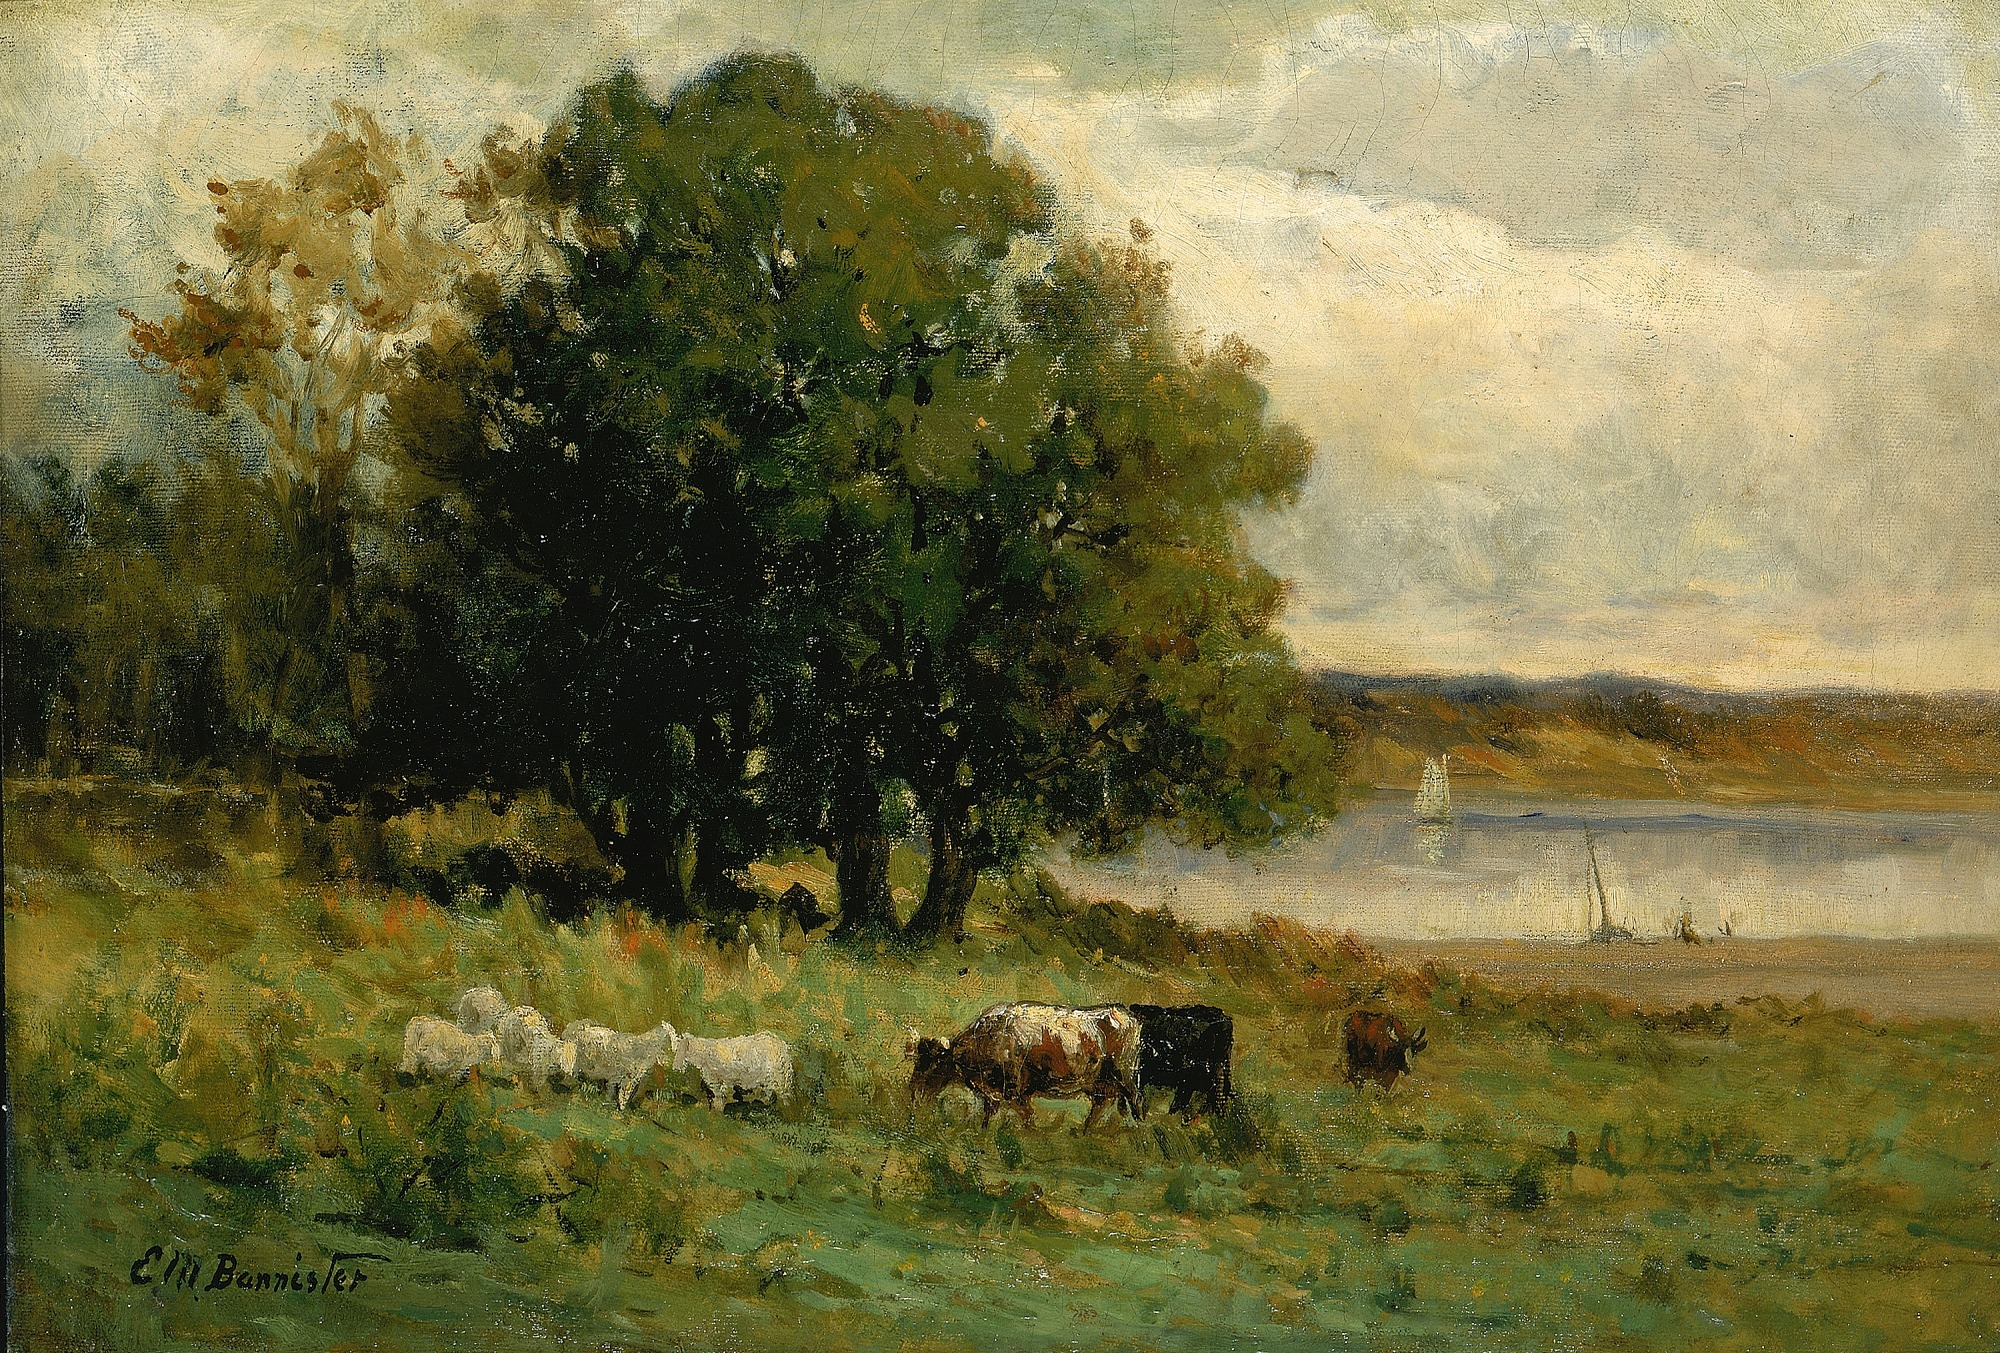 Untitled (cattle near river with sailboat in distance)